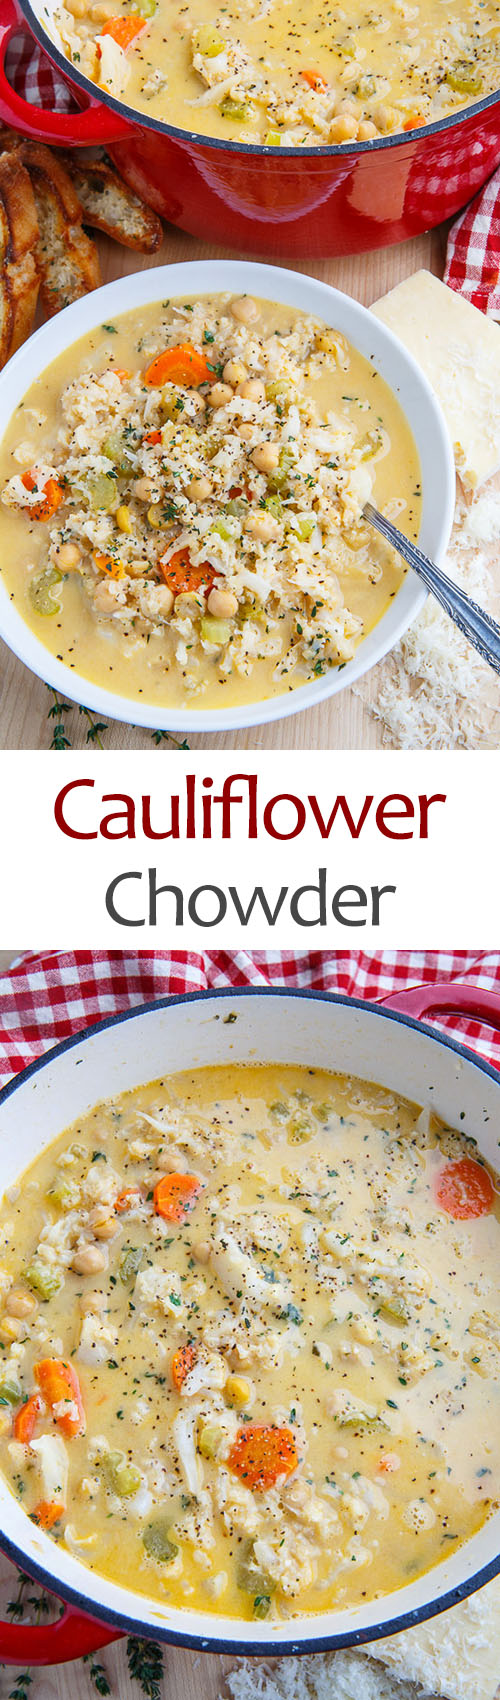 Asiago Cauliflower Chowder